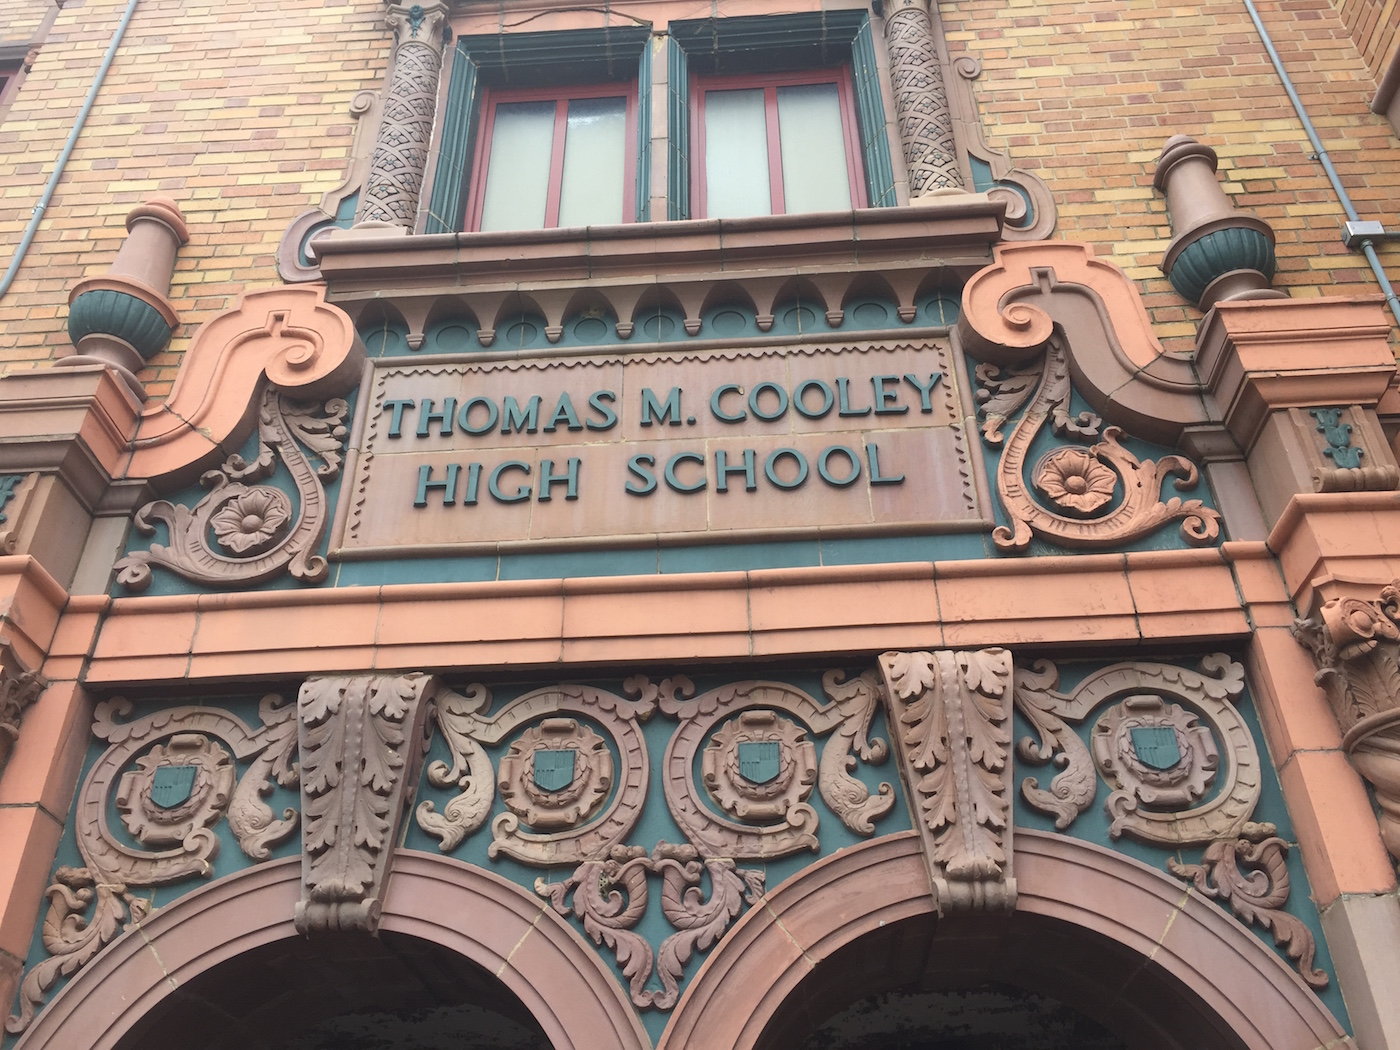 On the first day, fellows toured Cooley High School in Detroit's Northwest neighborhood, now being repurposed for the the Cooley Reuse Project, a future community hub with a library and mixed-income housing. (photo by the author for Hyperallergic) (click to enlarge)